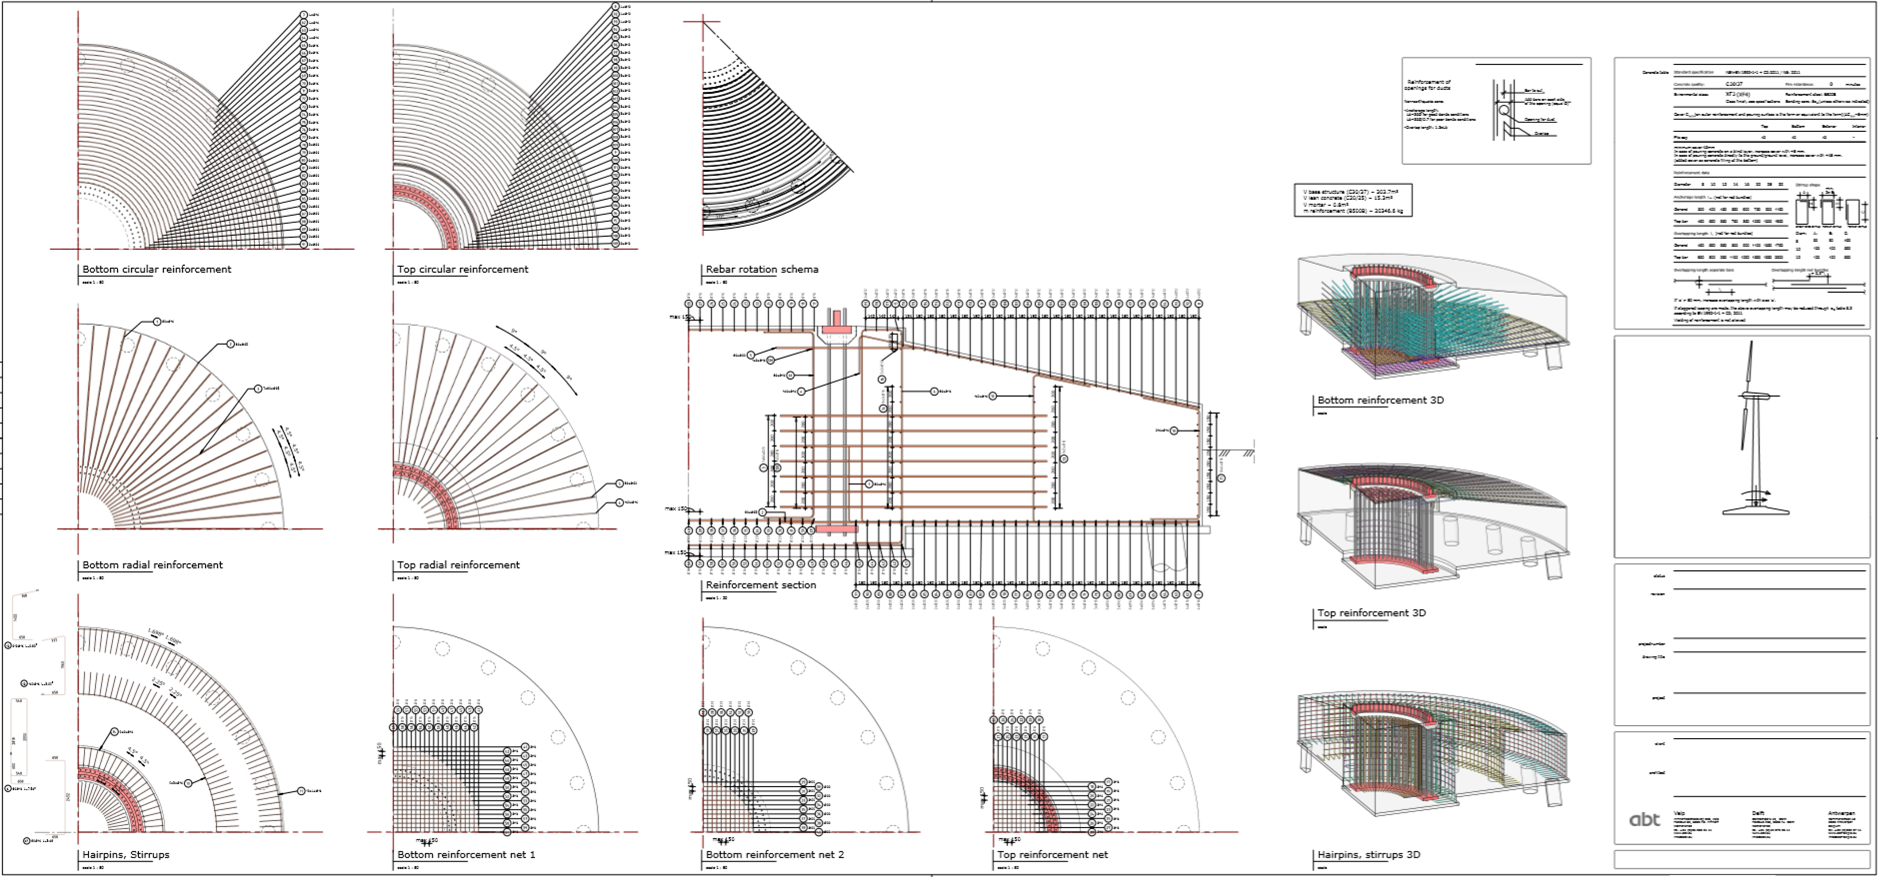 Rebar modelling in Revit with Dynamo – use case by ABT - BIM Toolbox